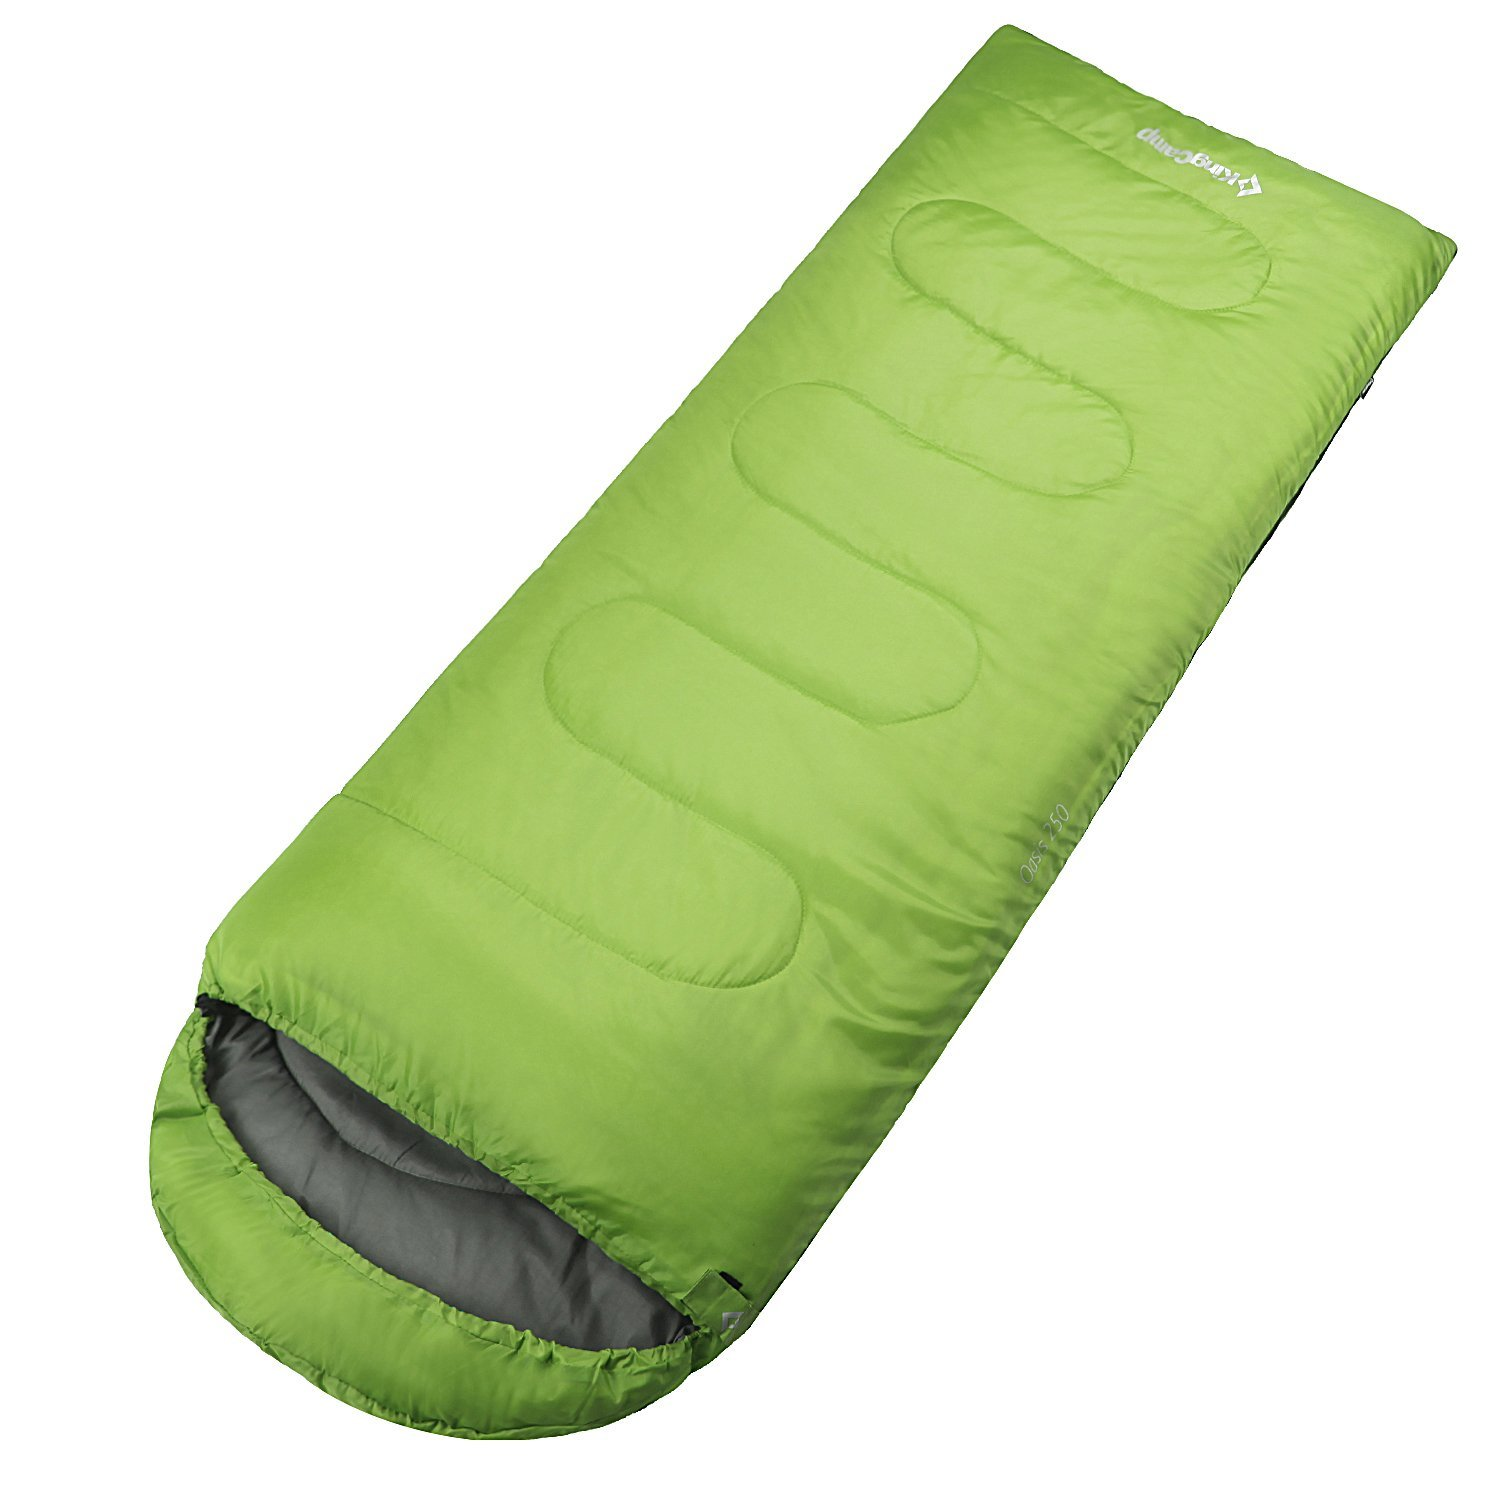 KingCamp Envelop Sleeping Bag 4 Season Portable Comfort with Free Hood, Compression Sack for Camping, Backpack, Outdoor by Kingcamp